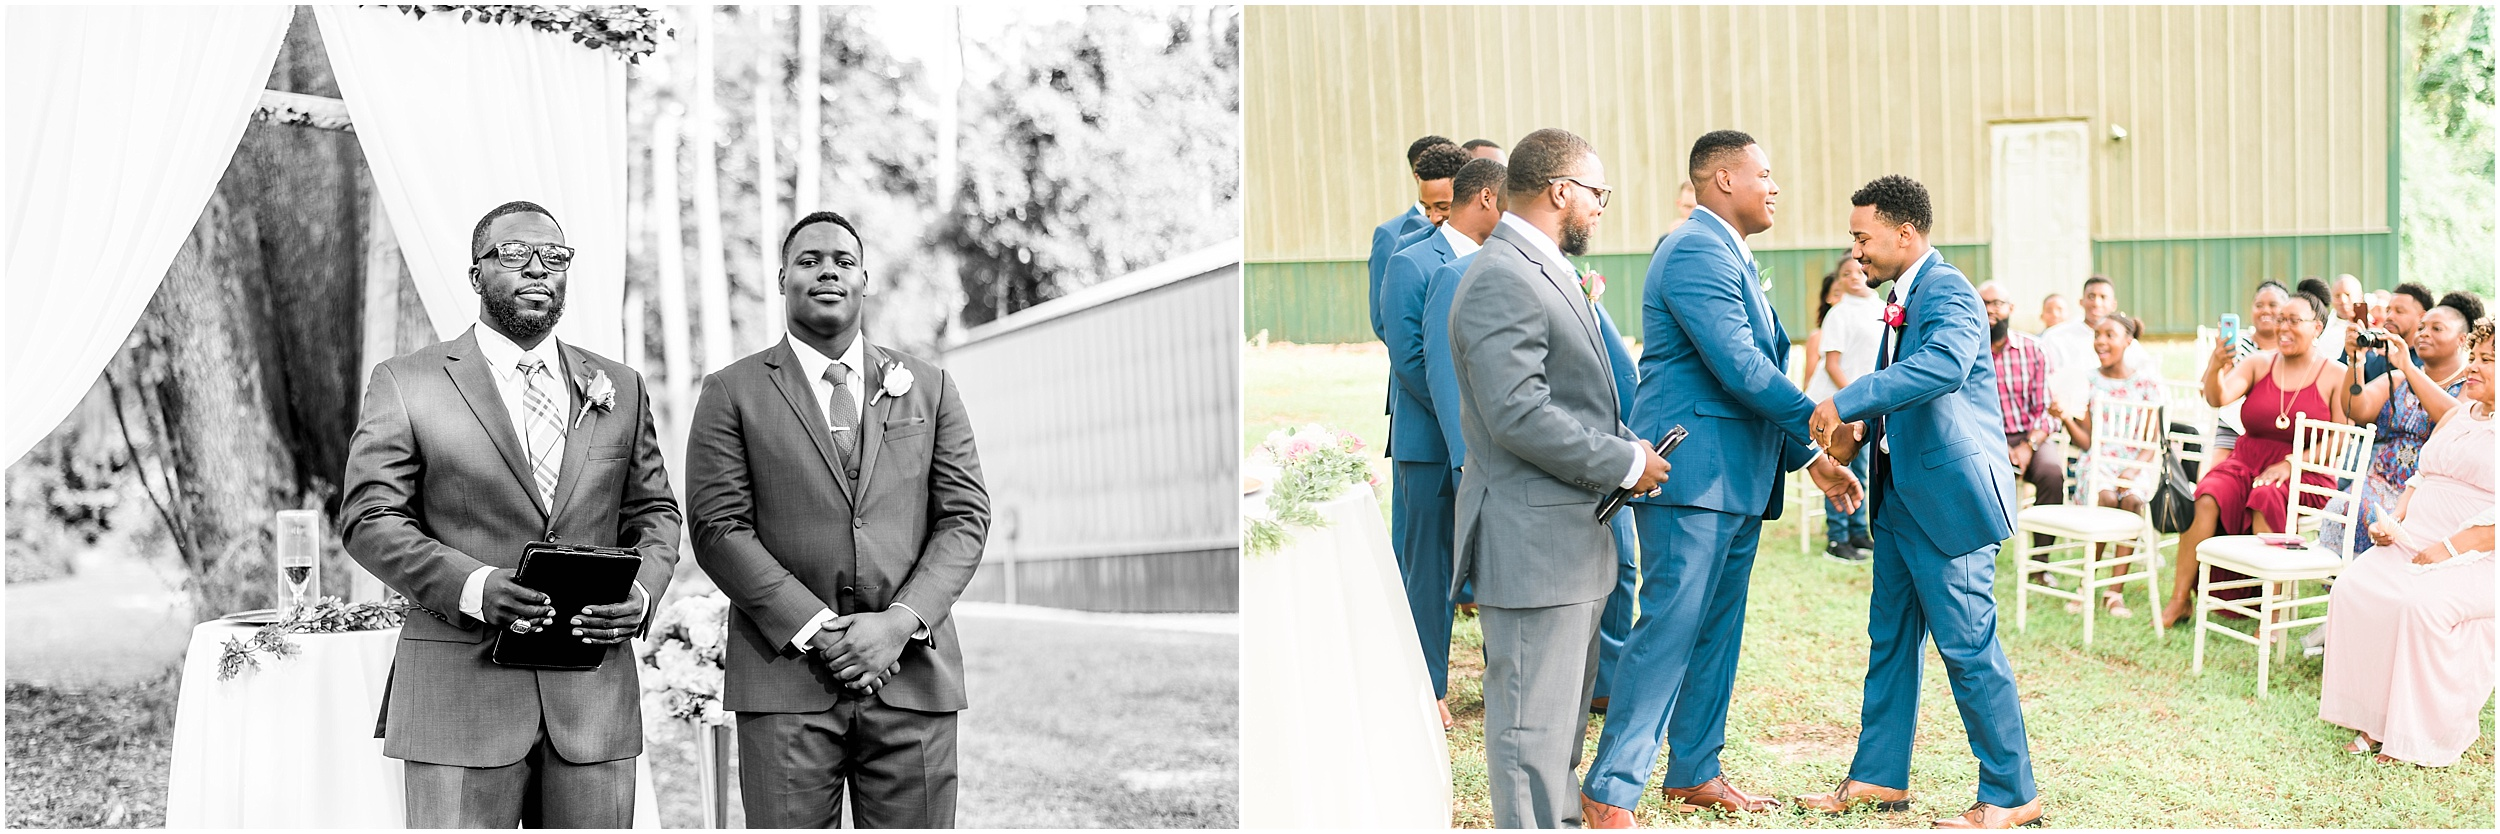 Tallahassee Florida Wedding Photographer, Therline & Jerry Wedding at Restoration Place, Tallahassee Florida_0022.jpg